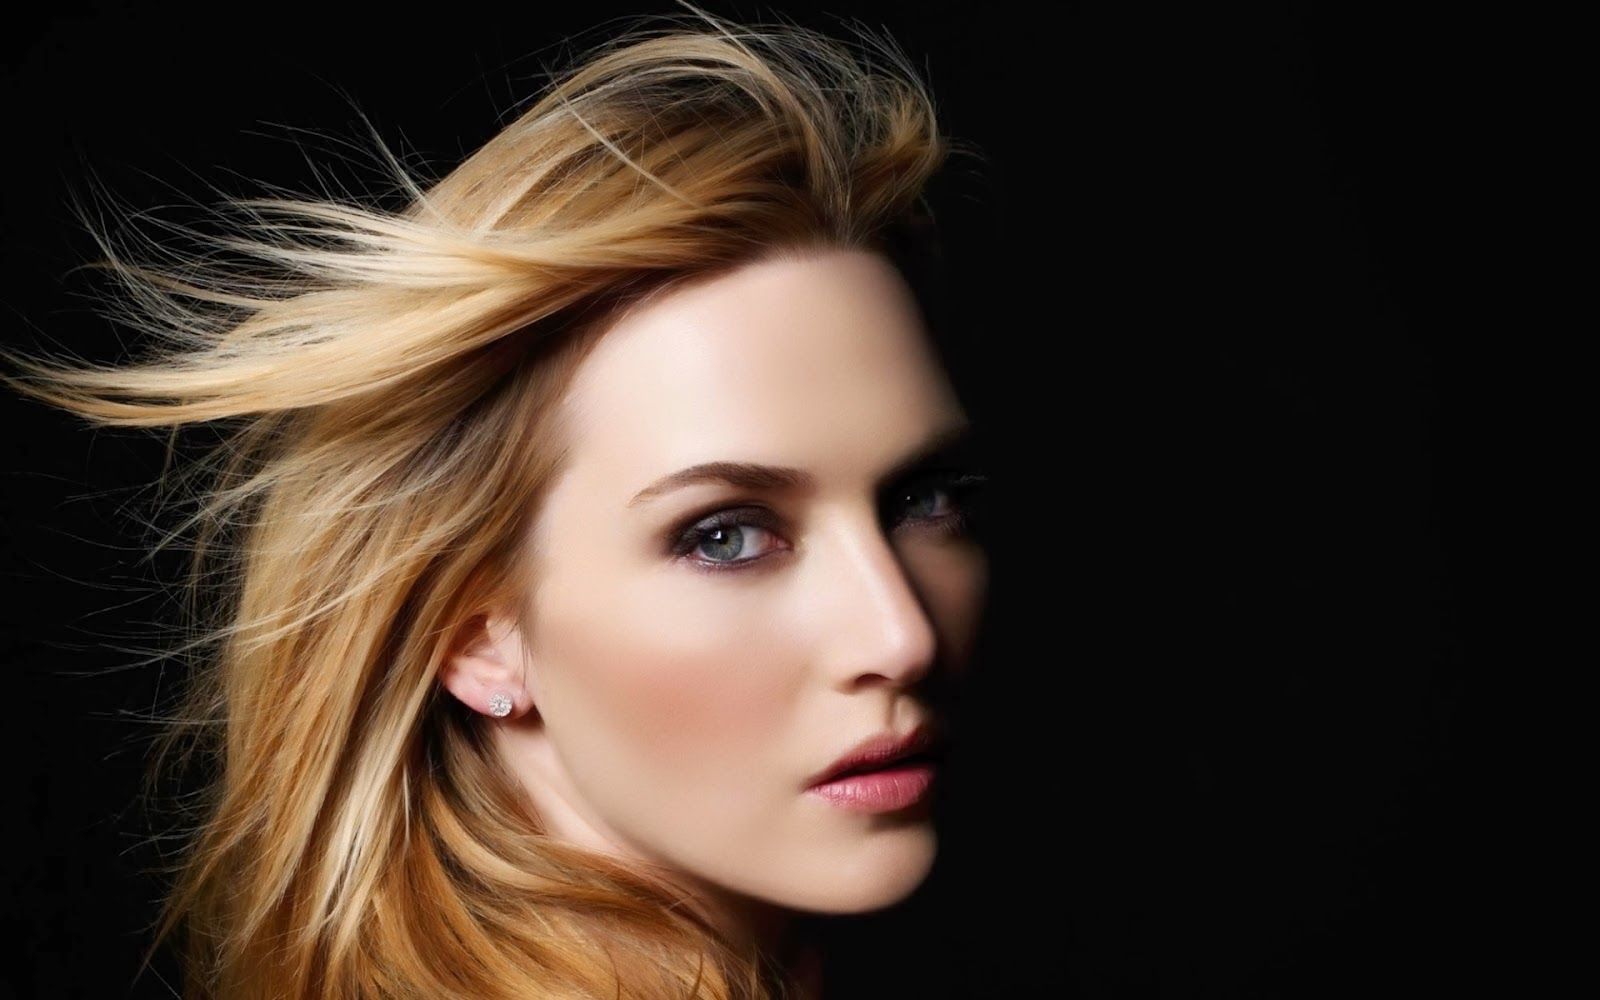 Kate Winslet hot hd wallpaper for desktop